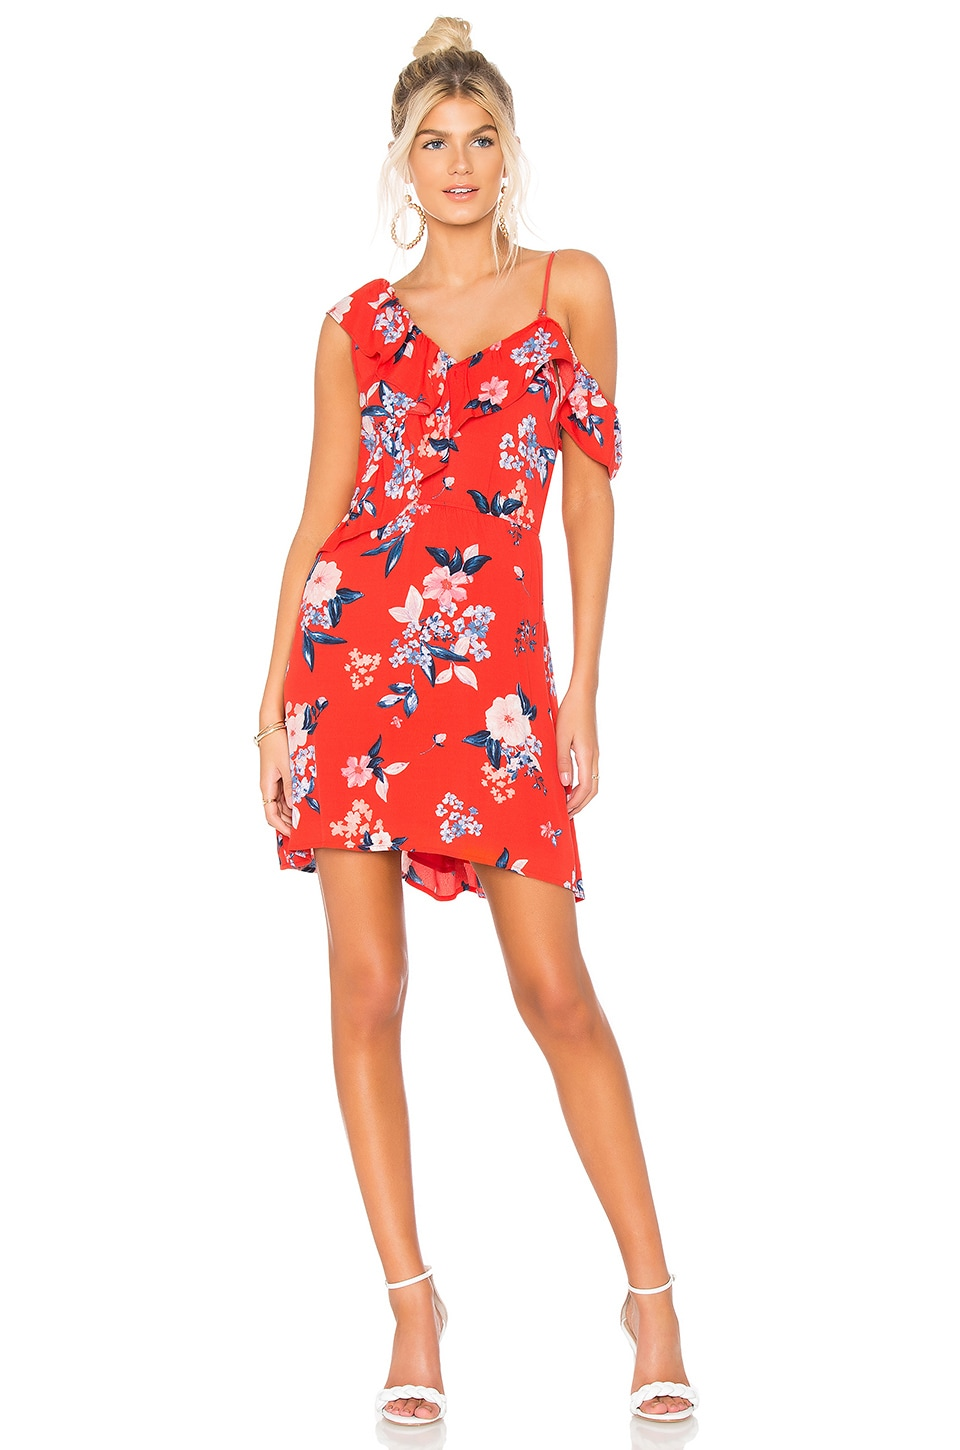 CUPCAKES AND CASHMERE Cordetta Asymmetric Ruffled Floral-Print Dress in Red